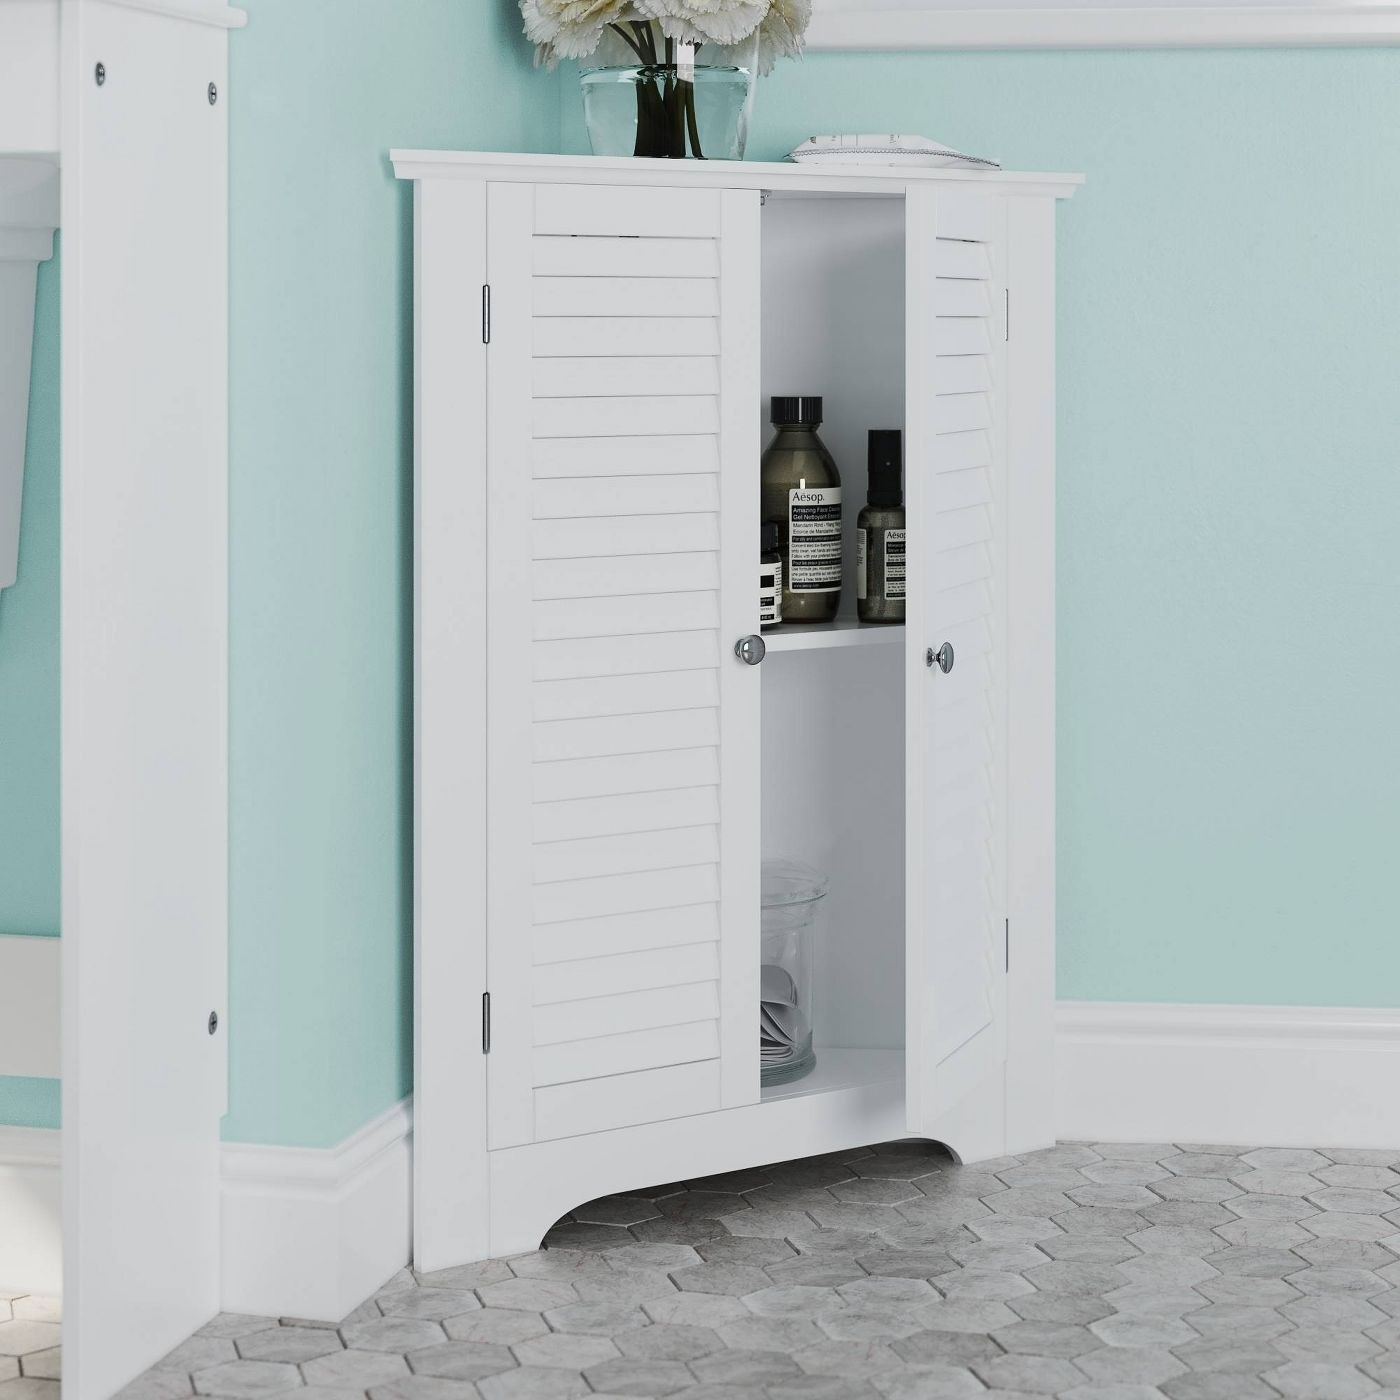 The white corner cabinet with shutter doors